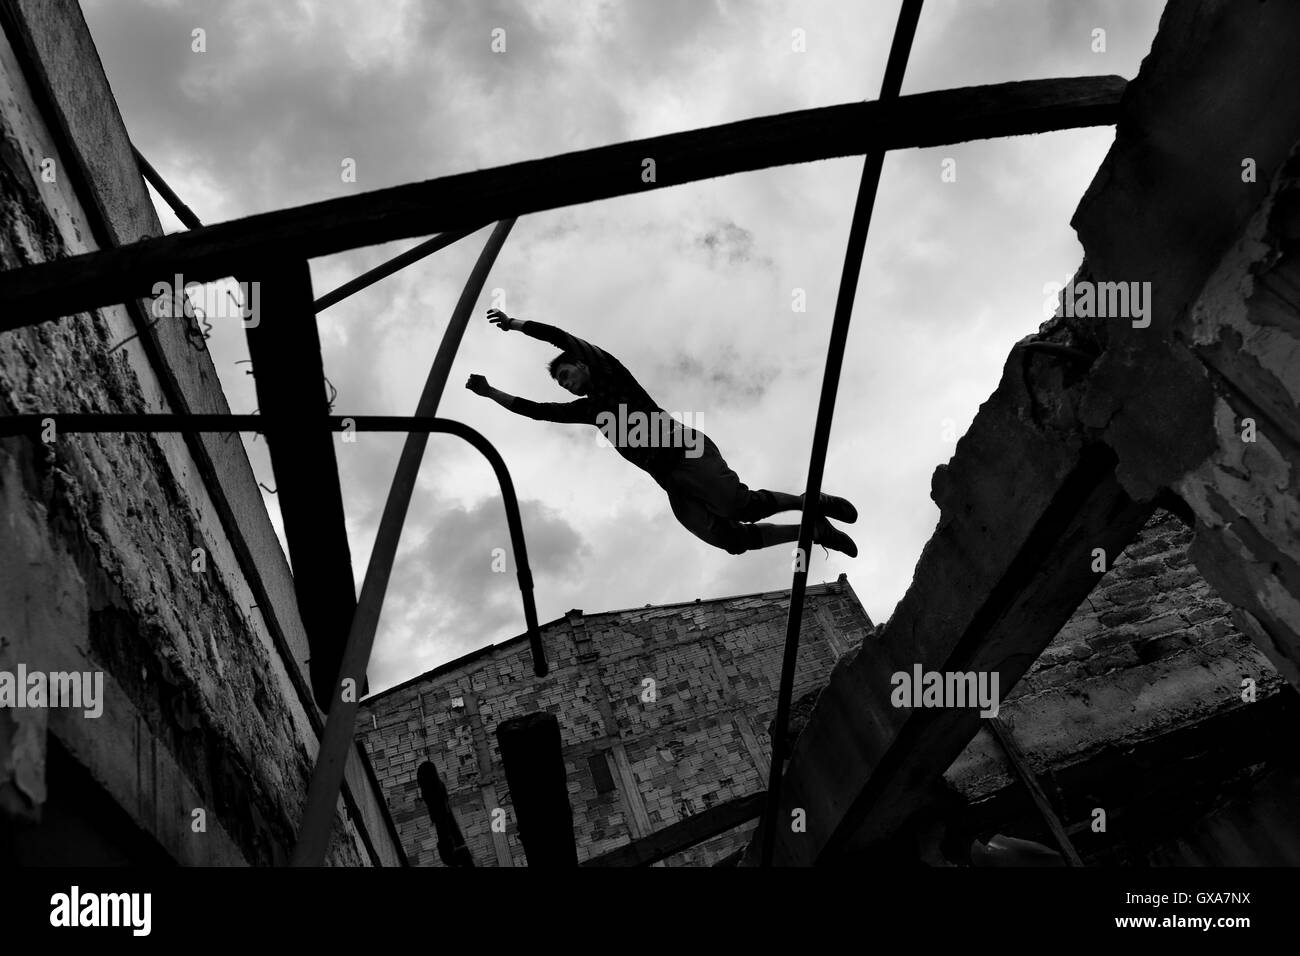 A Colombian parkour runner jumps over a gap inside an abandoned house during free running trainings in Bogotá, - Stock Image